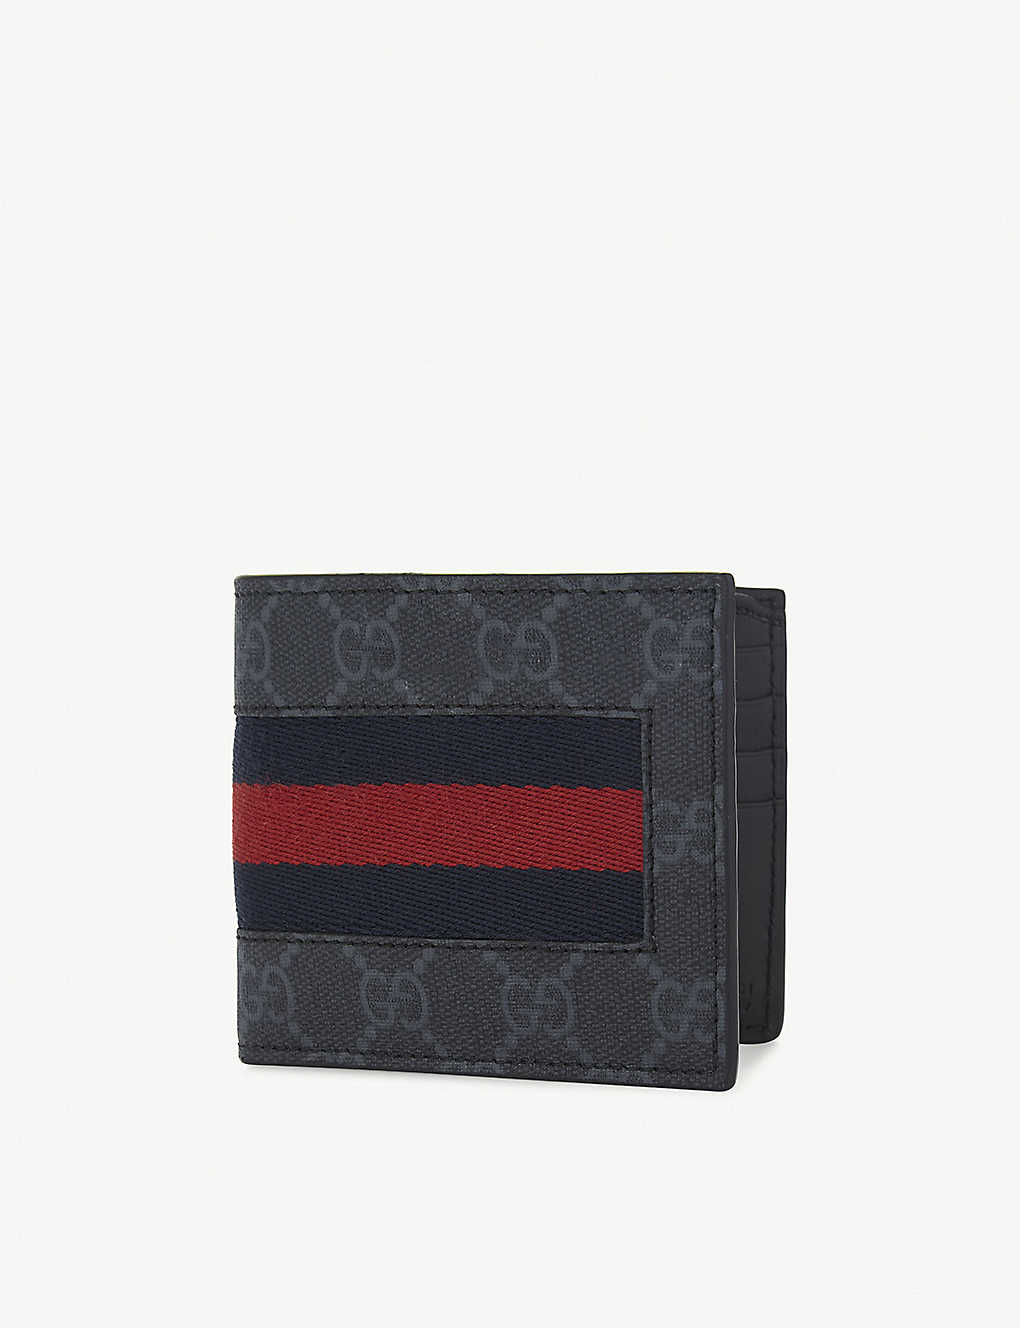 033102880384 GUCCI - Web GG supreme billfold wallet | Selfridges.com